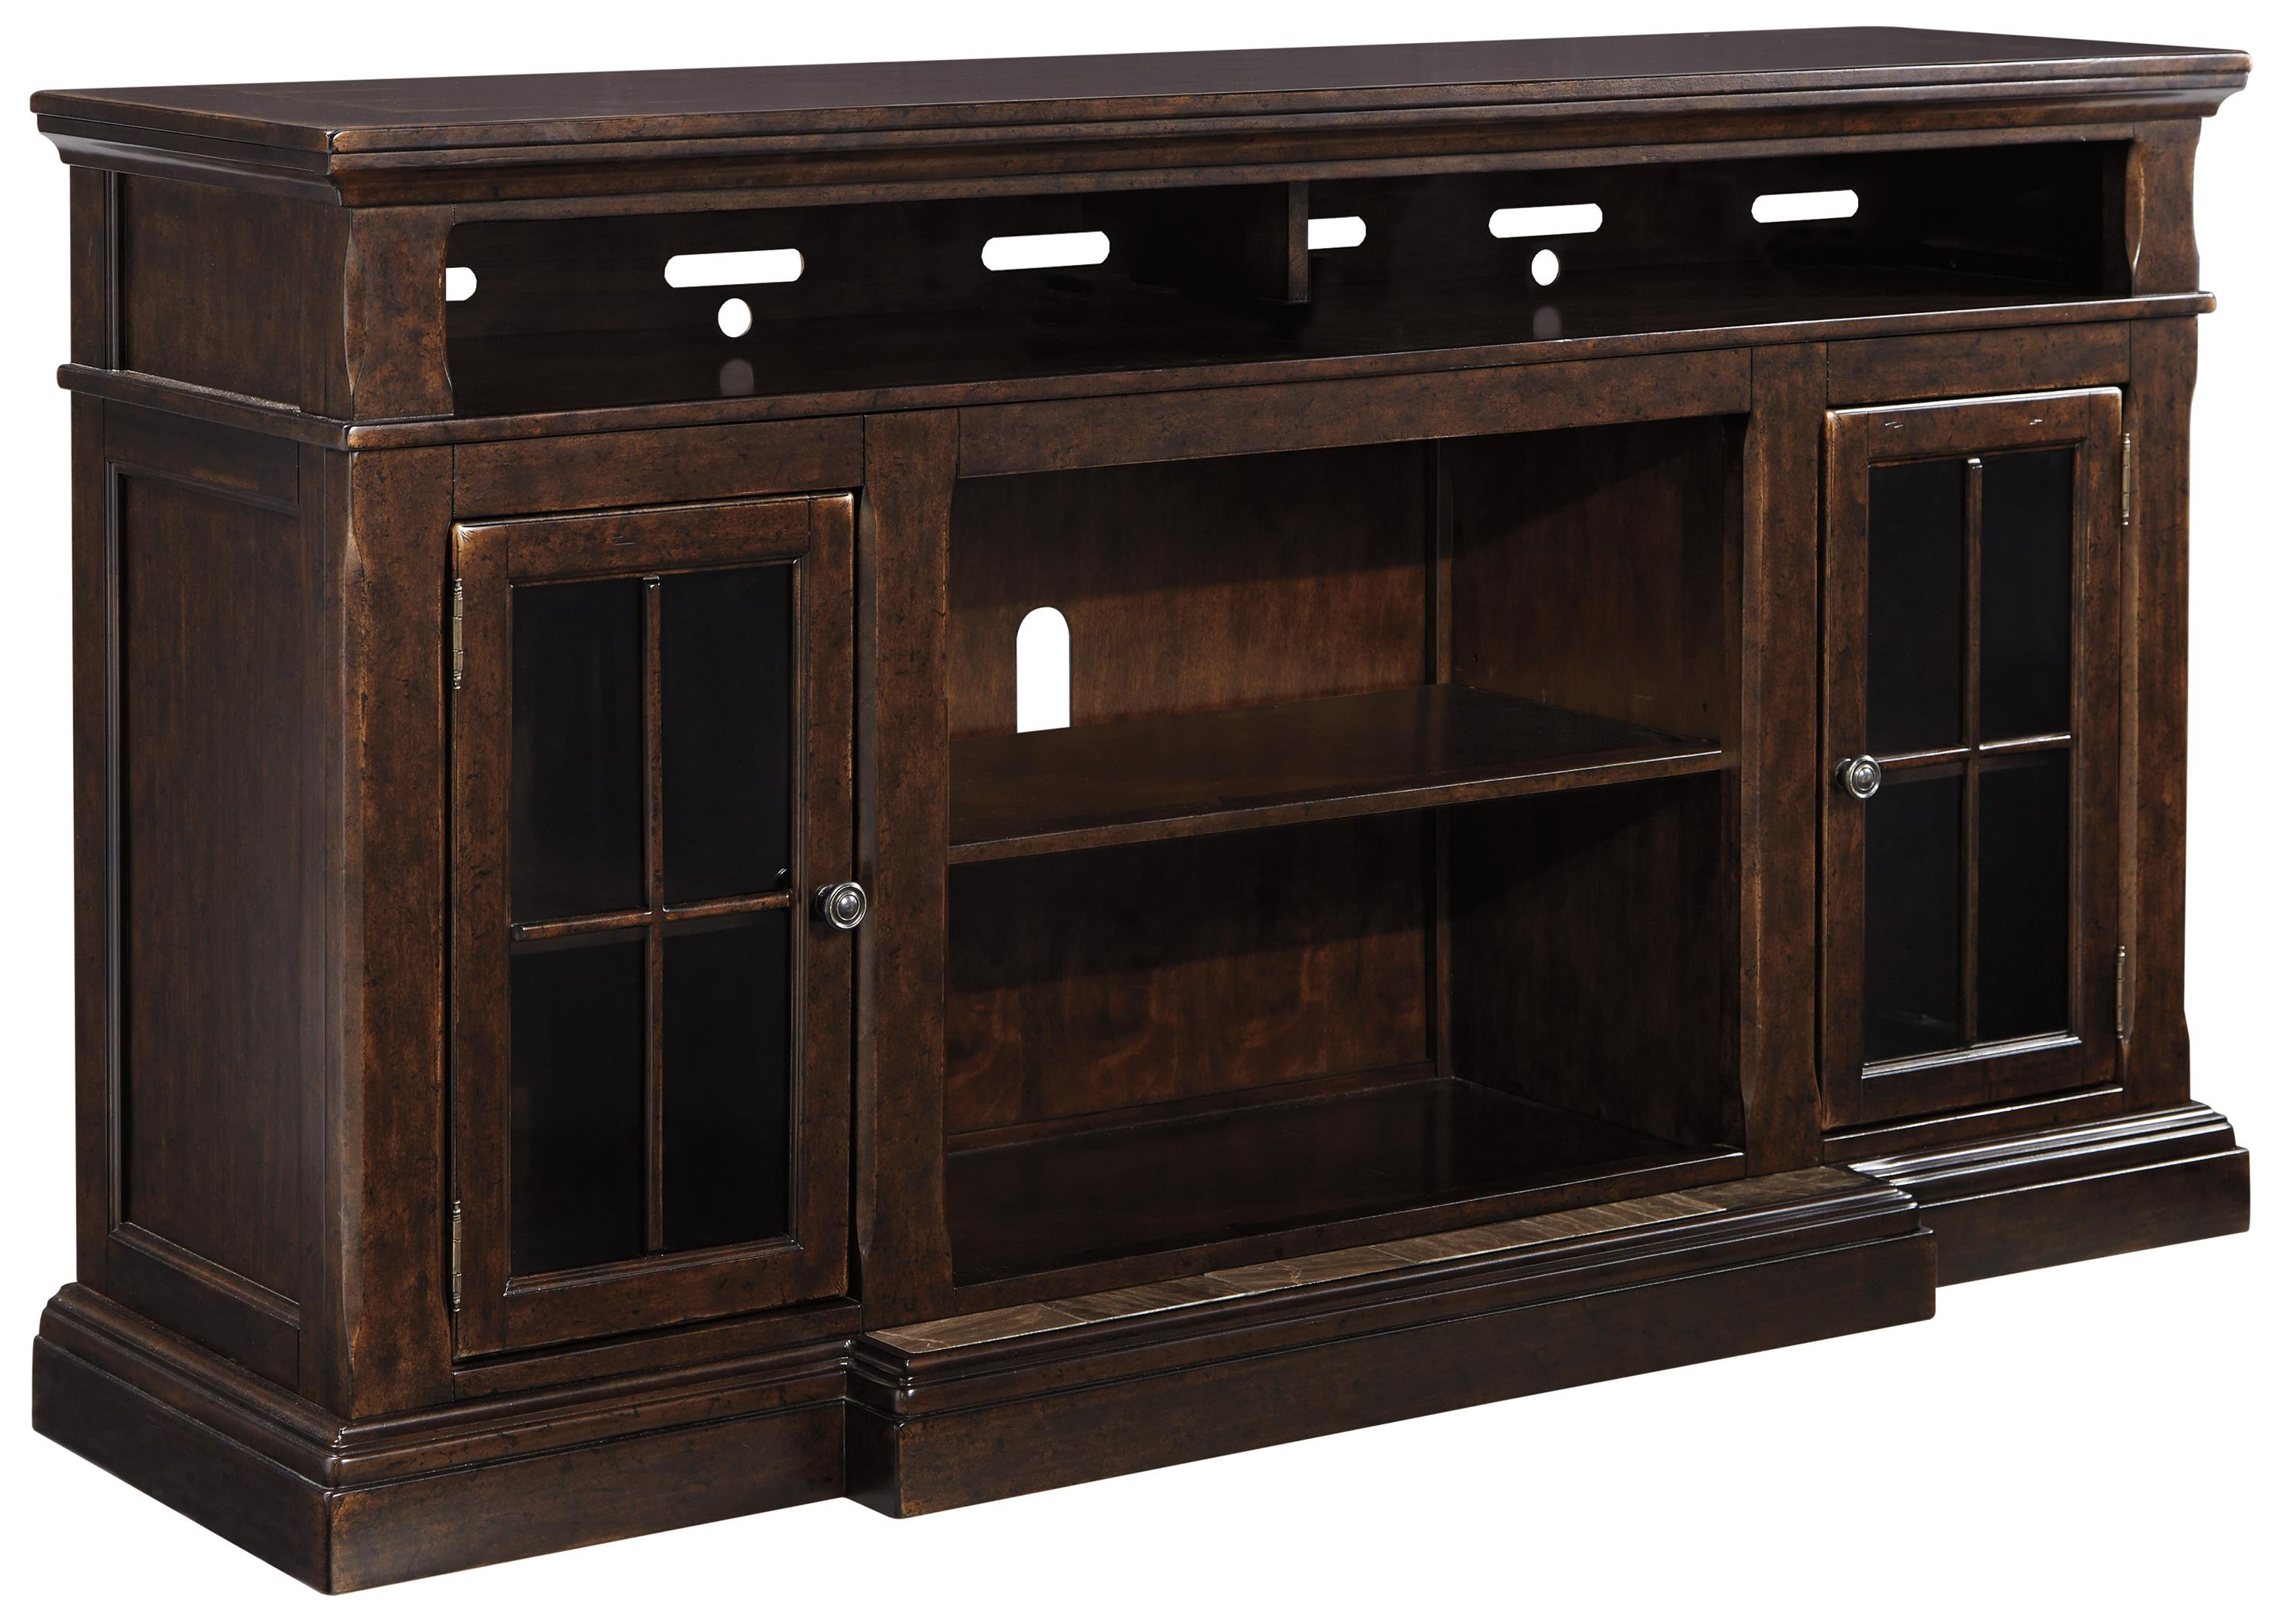 Roddinton Extra Large TV Stand by Signature Design by Ashley at Beck's Furniture